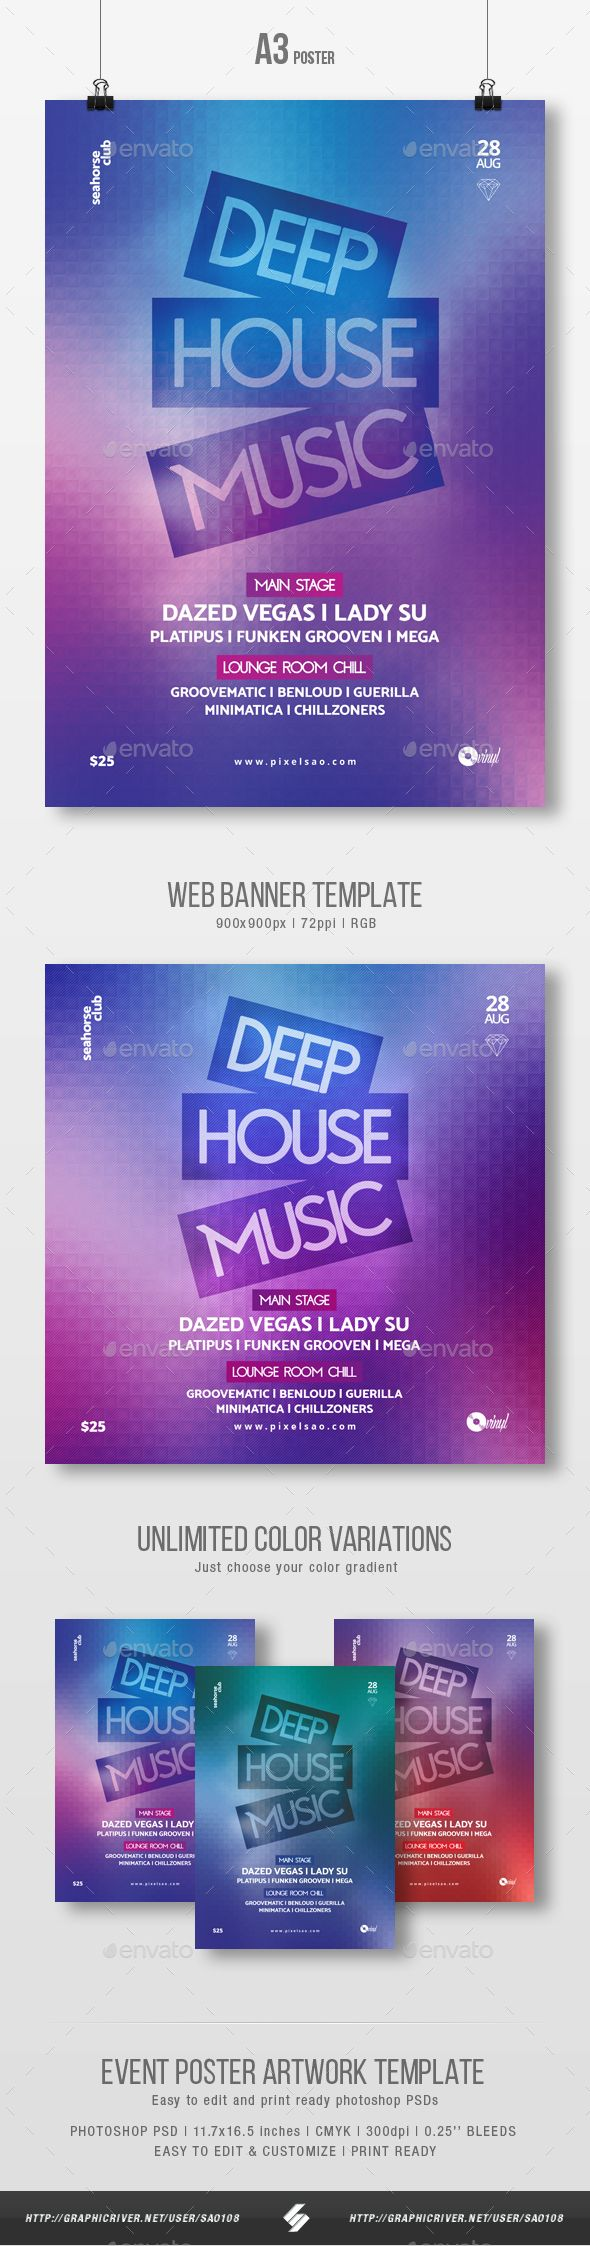 Deep House Music  Party Flyer / Poster Template A3 #a3 #dance  • Download here → https://graphicriver.net/item/deep-house-music-party-flyer-poster-template-a3/21273369?ref=pxcr